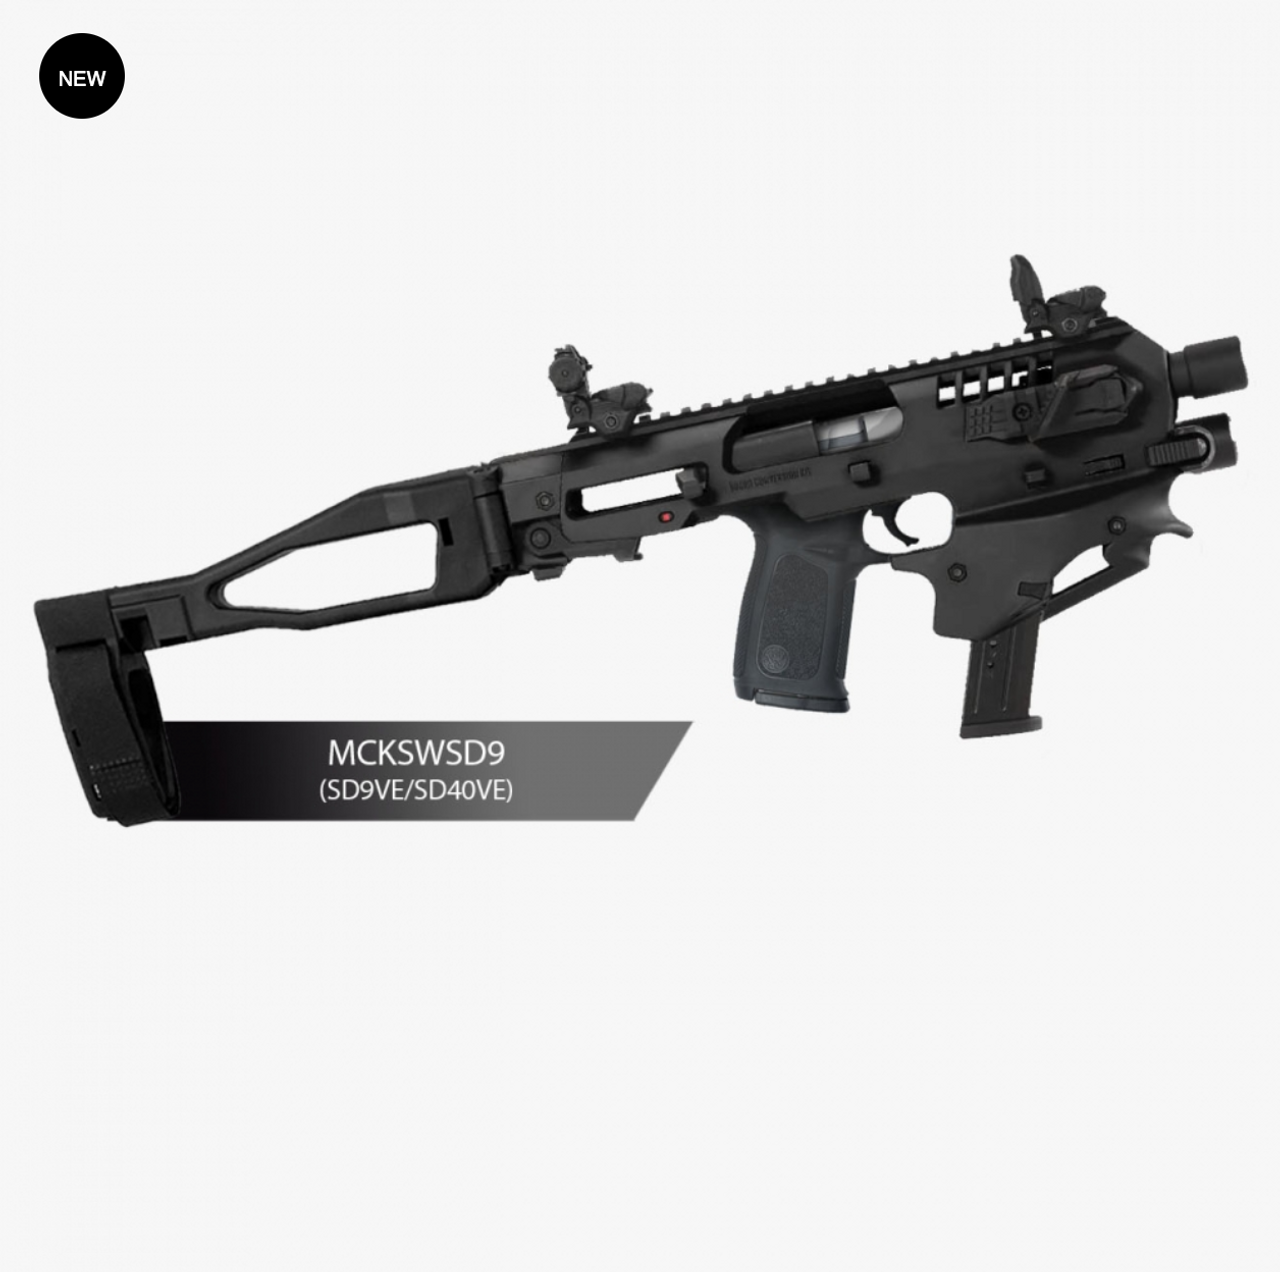 *NEW* MCKSWSD9 | MICRO CONVERSION KIT SMITH AND WESSON SD9VE/SD40VE